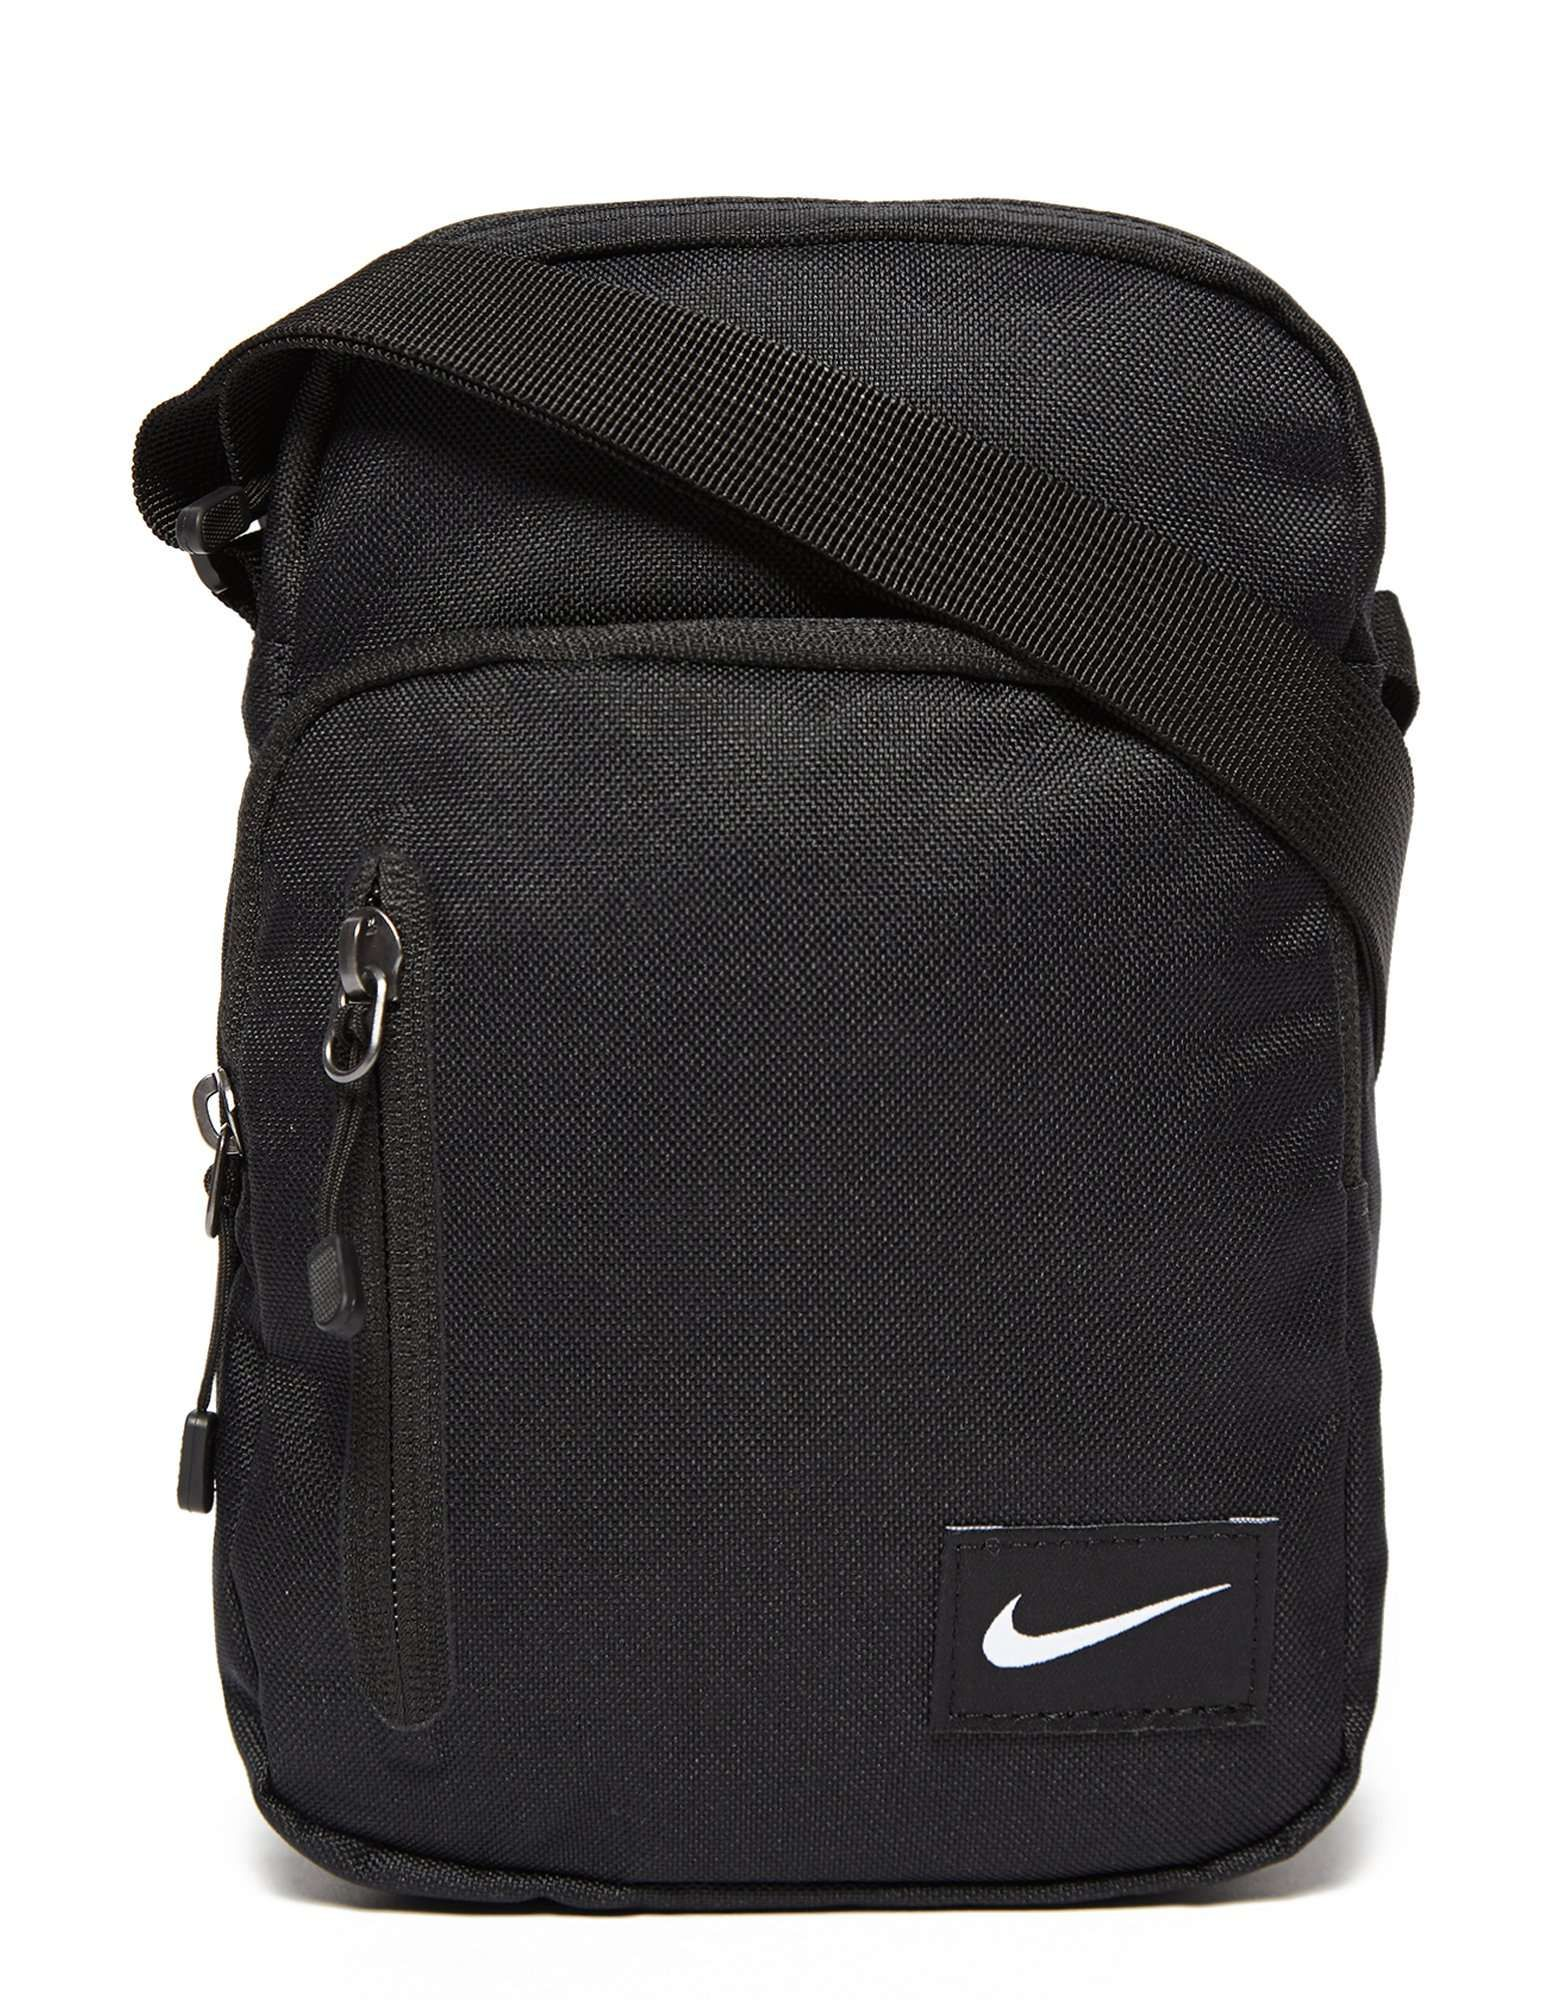 Nike Core Small Items Bag II - Shop online for Nike Core Small Items Bag II  with JD Sports f07191964e903